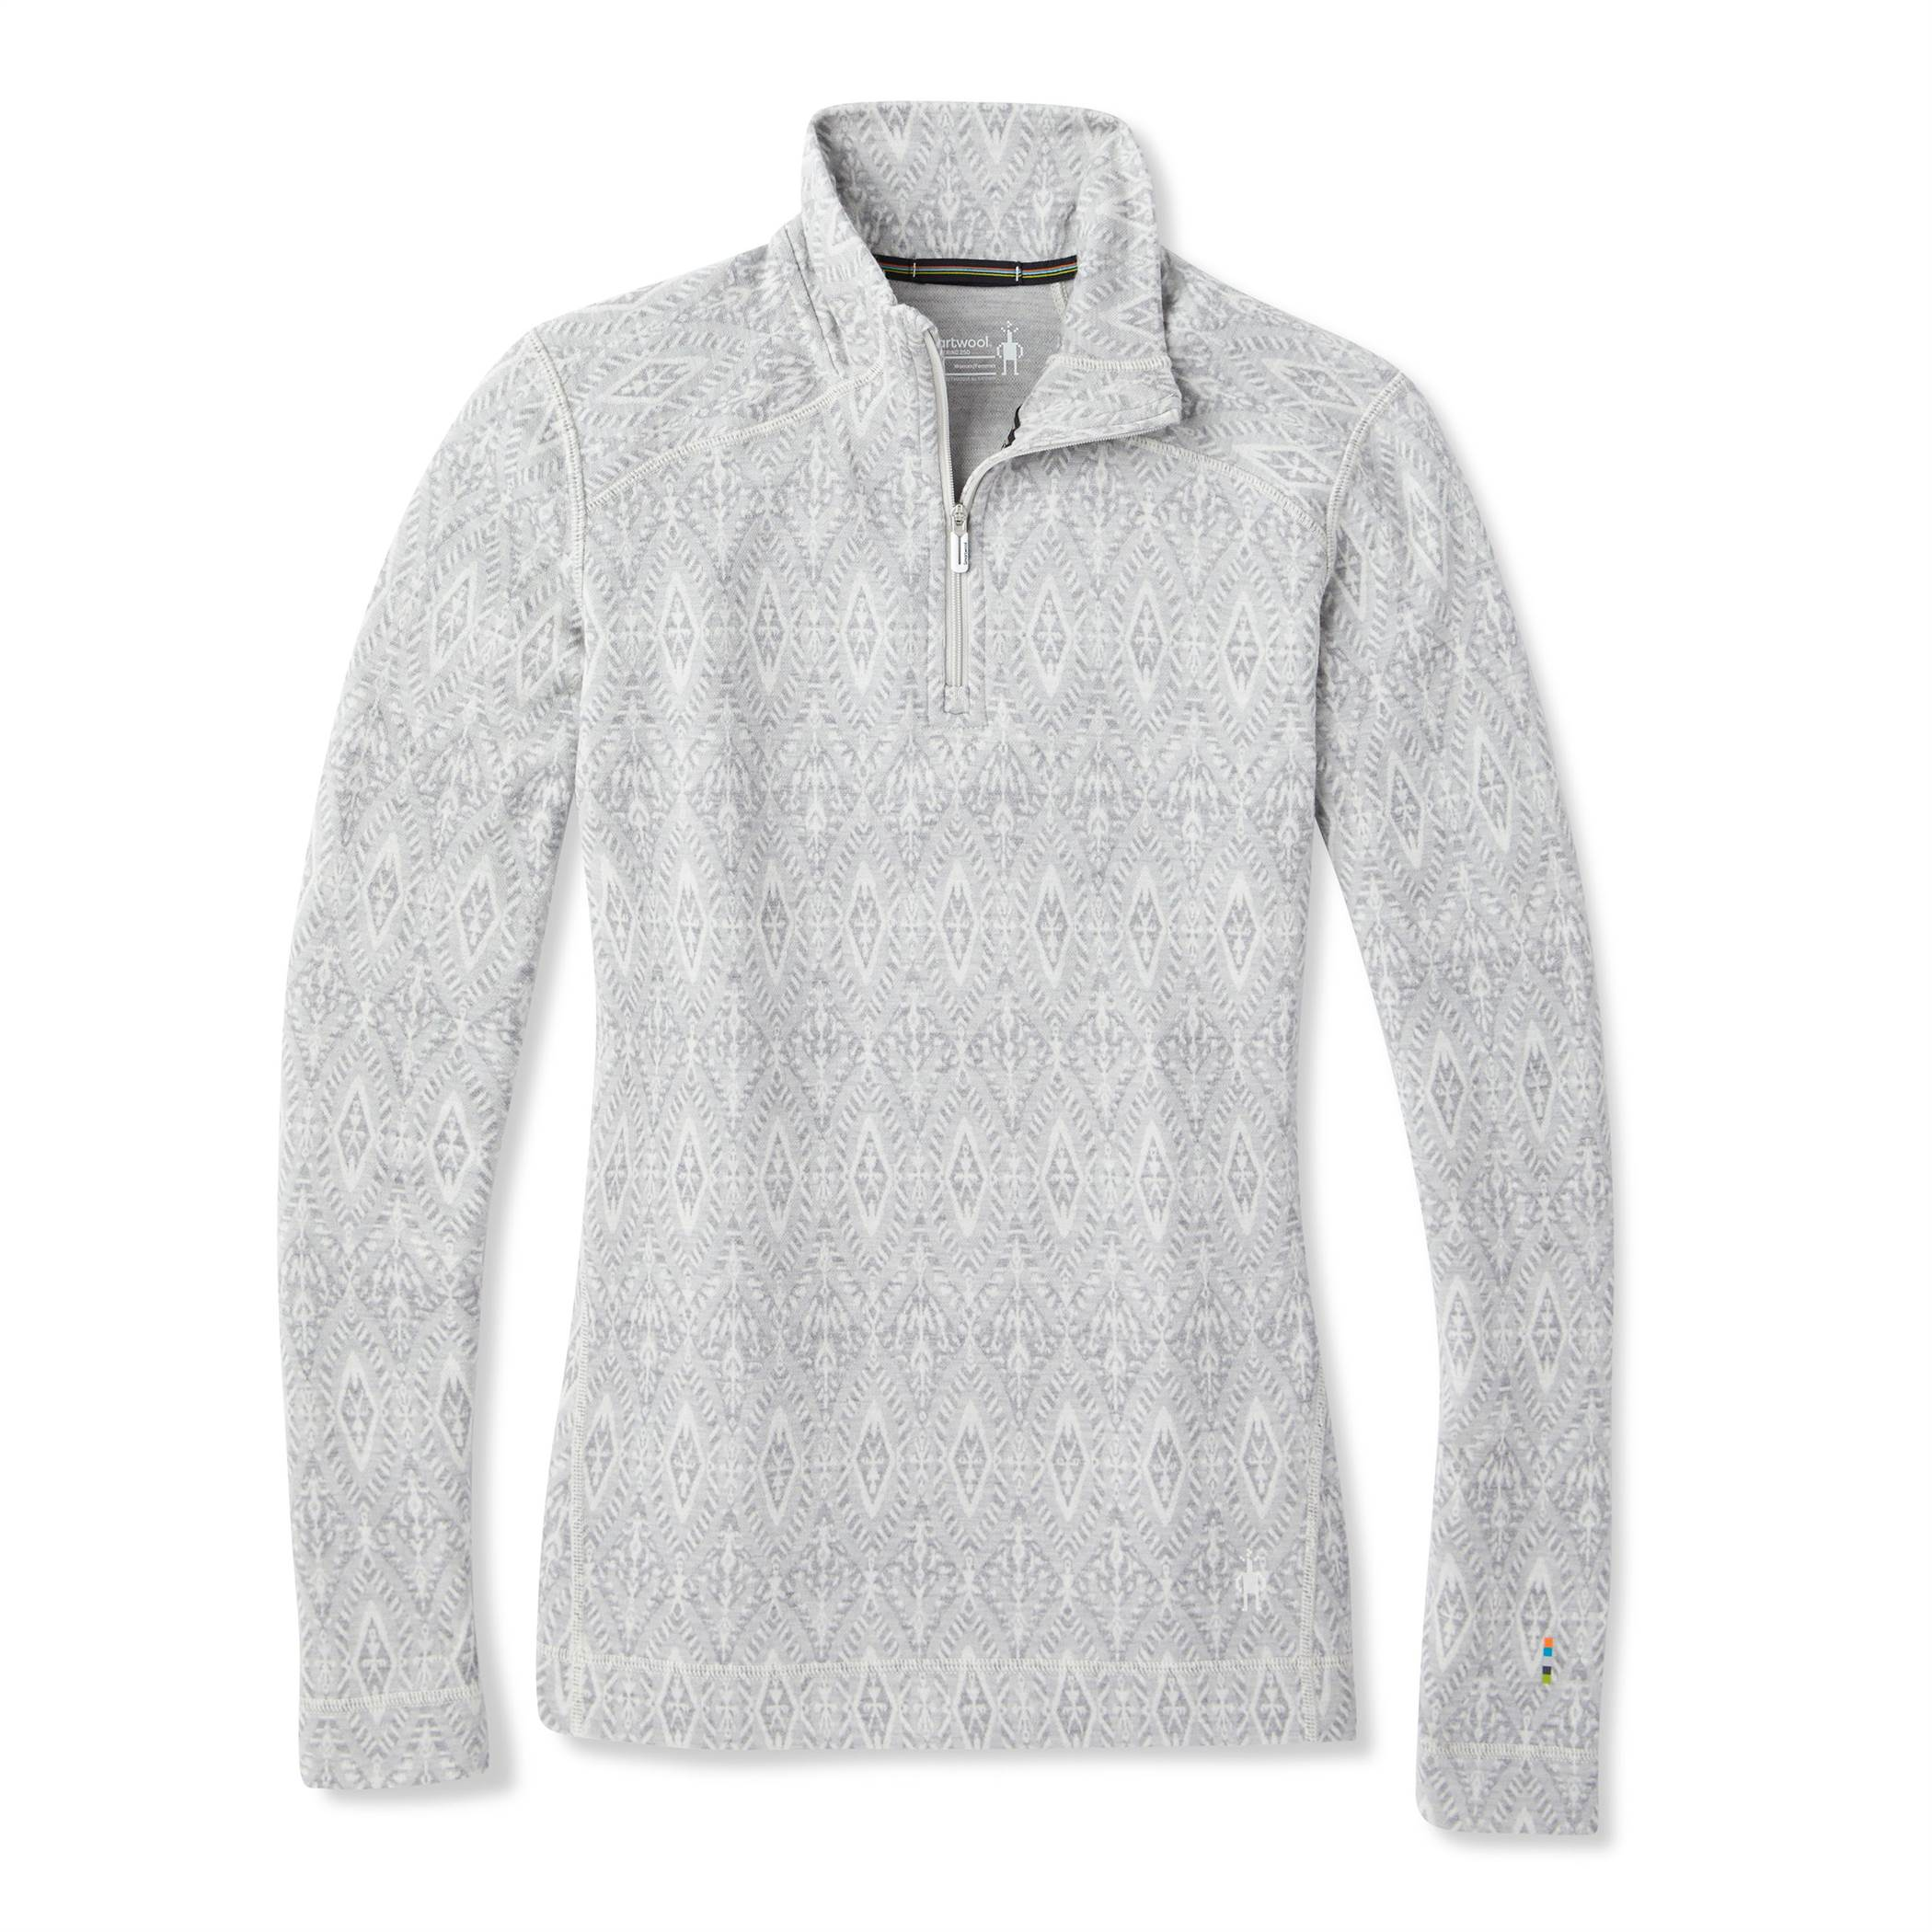 Merino 250 Pattern 1/4 Zip - Women's